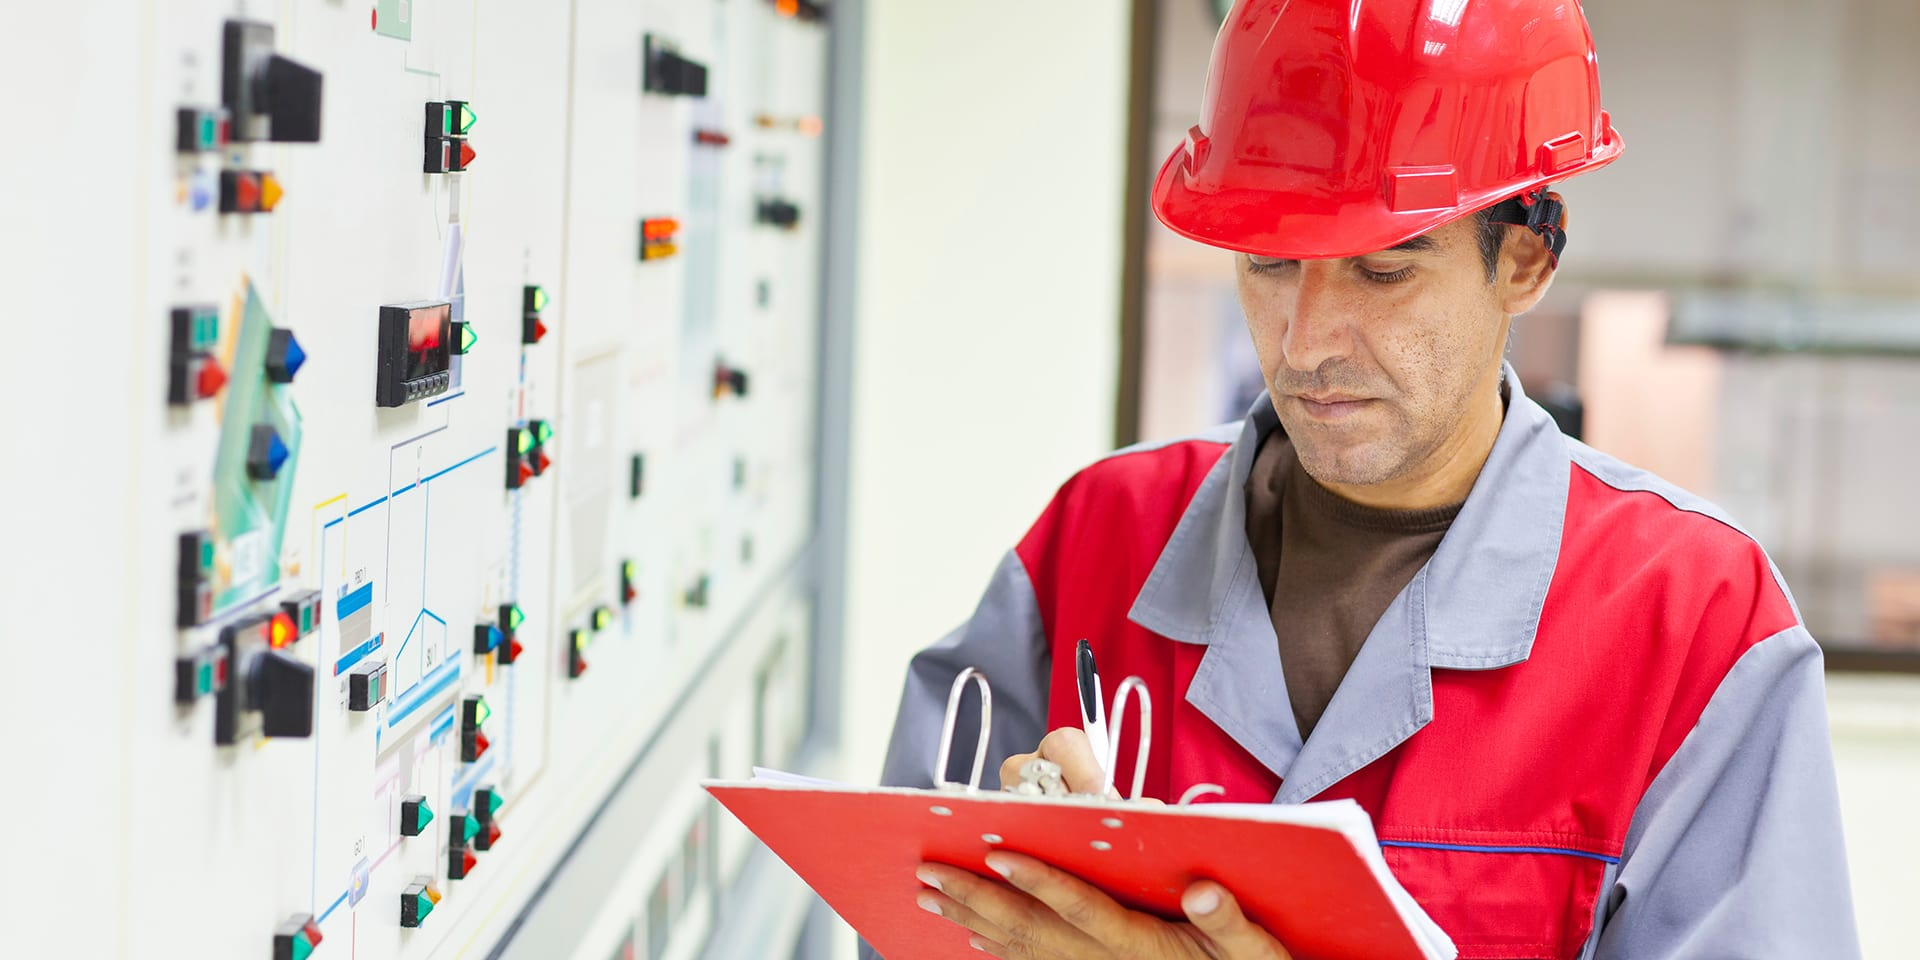 Signavio automatic scheduling internal controls - worker writes down some controlling notes